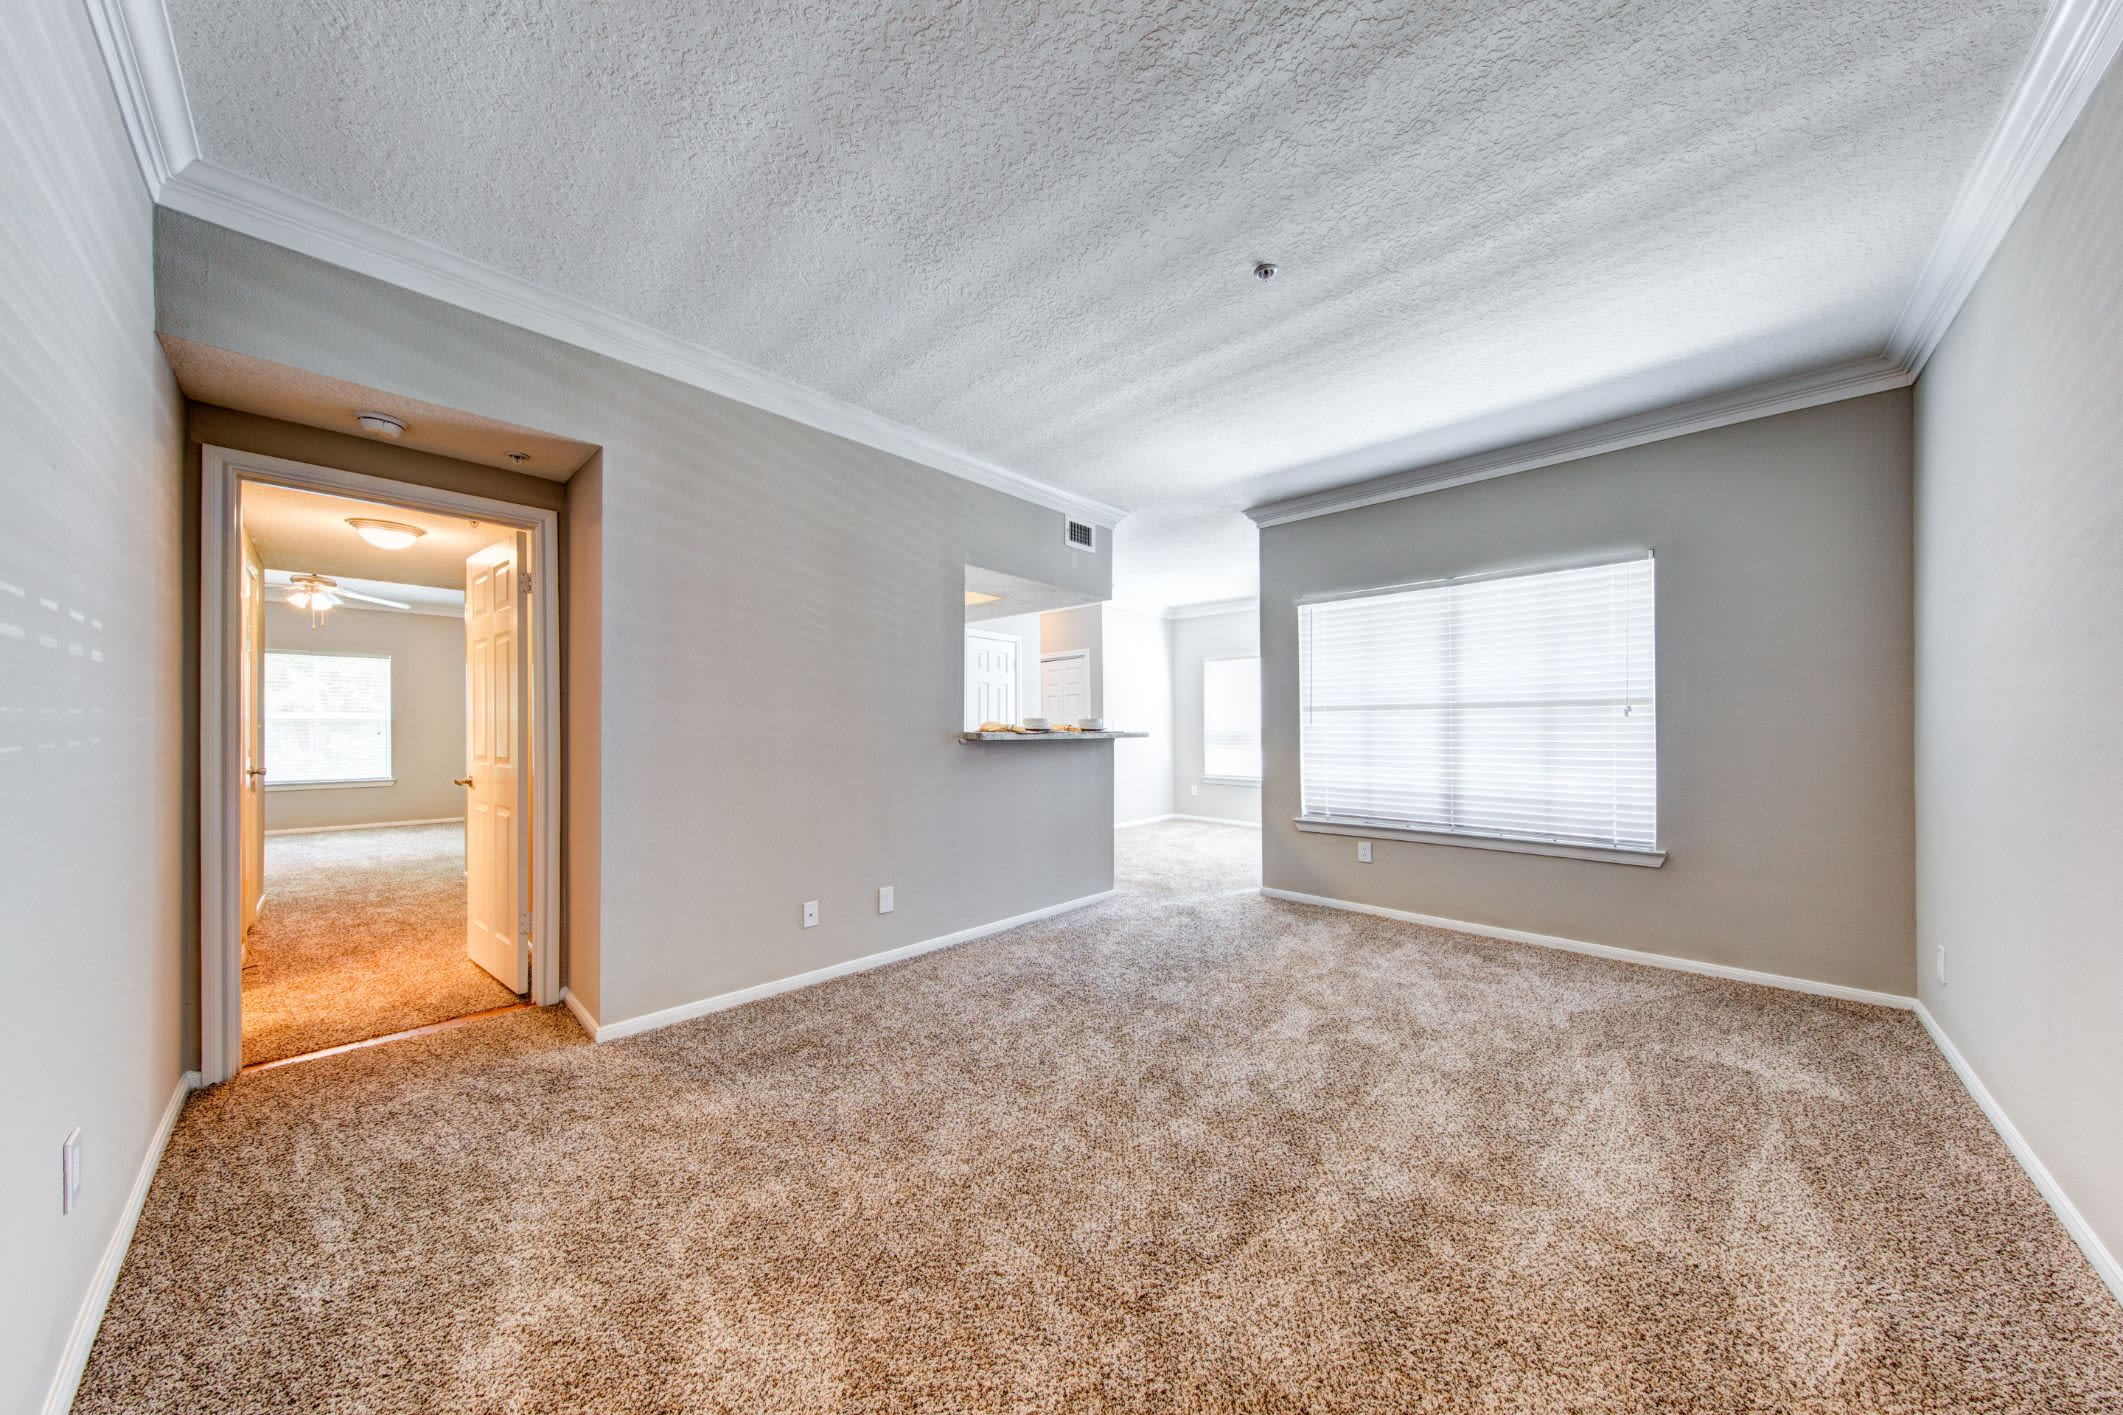 Bright room with carpet floors at Marquis at Silverton in Cary, North Carolina